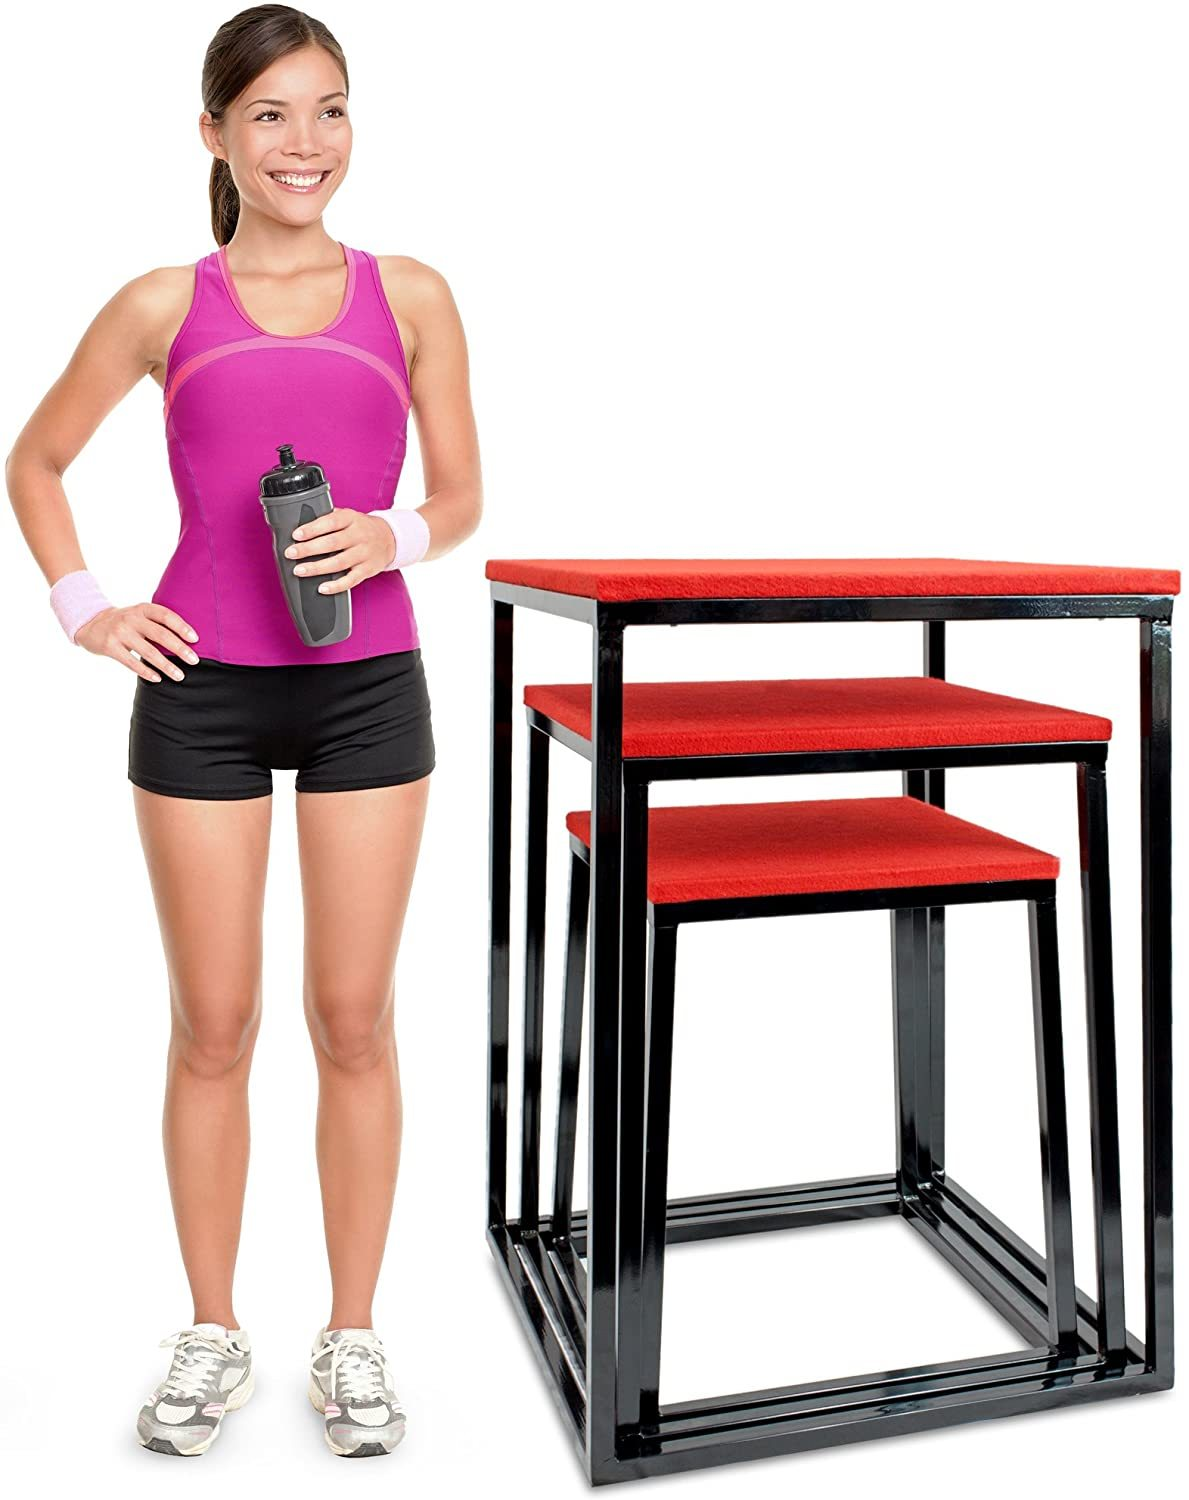 "Set of 3 Plyometric Jump Boxes – Step Platform, Fitness Training & Conditioning Equipment for Increasing Vertical, Speed, Stamina (24""/30""/36"")"